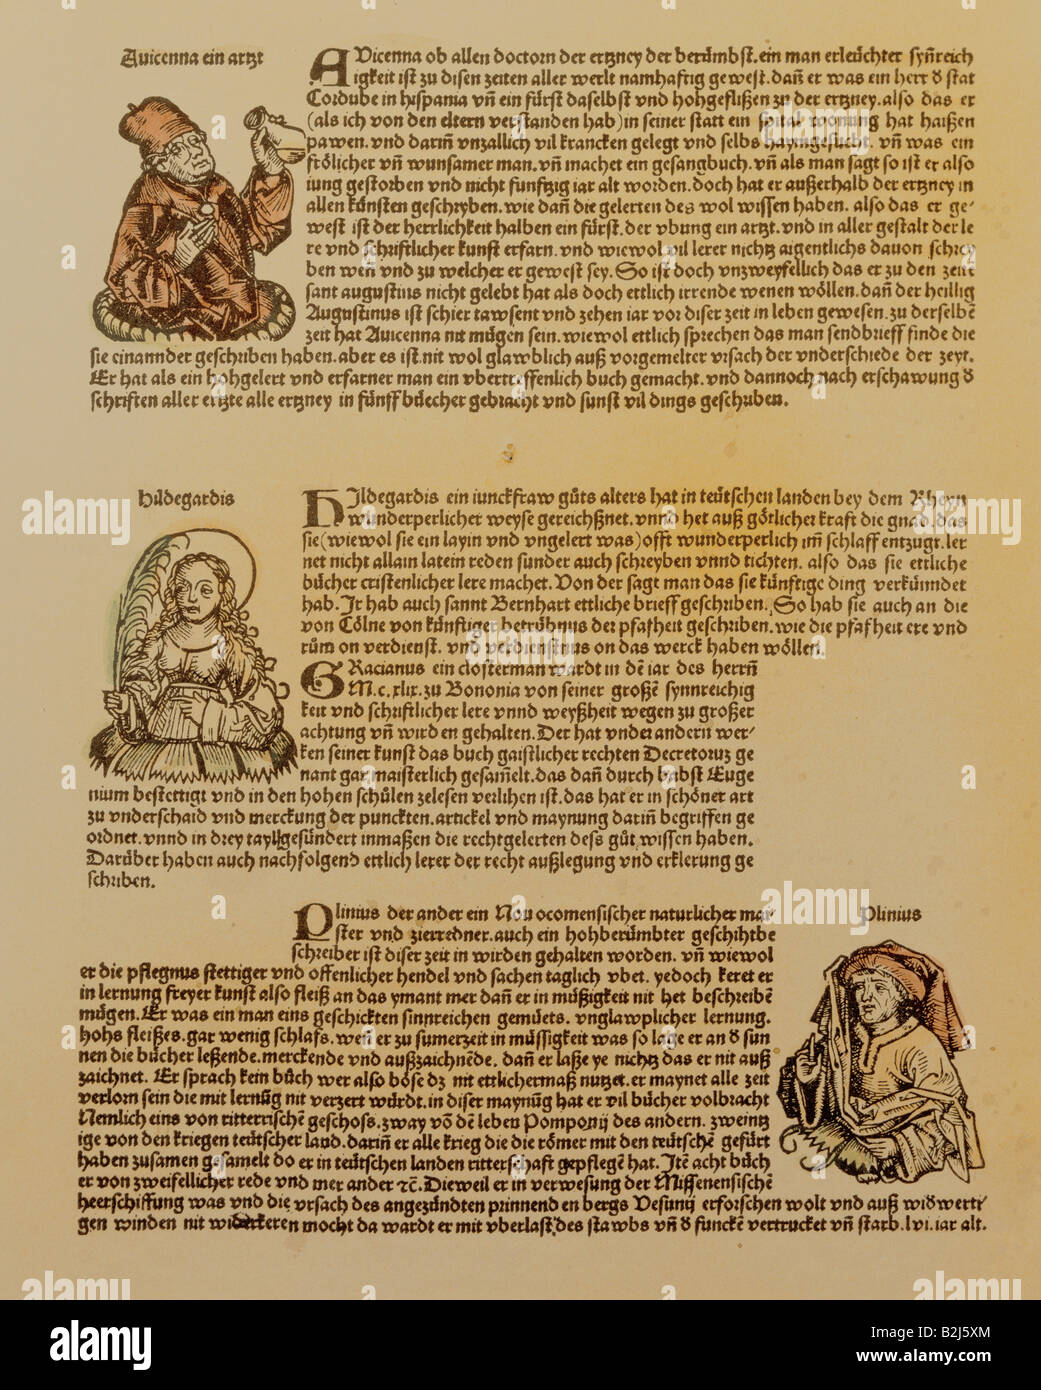 science, historiy, books, 'World Chronicle' of Hartmann Schedel, printed by Anton Korberger, Nuremberg, - Stock Image